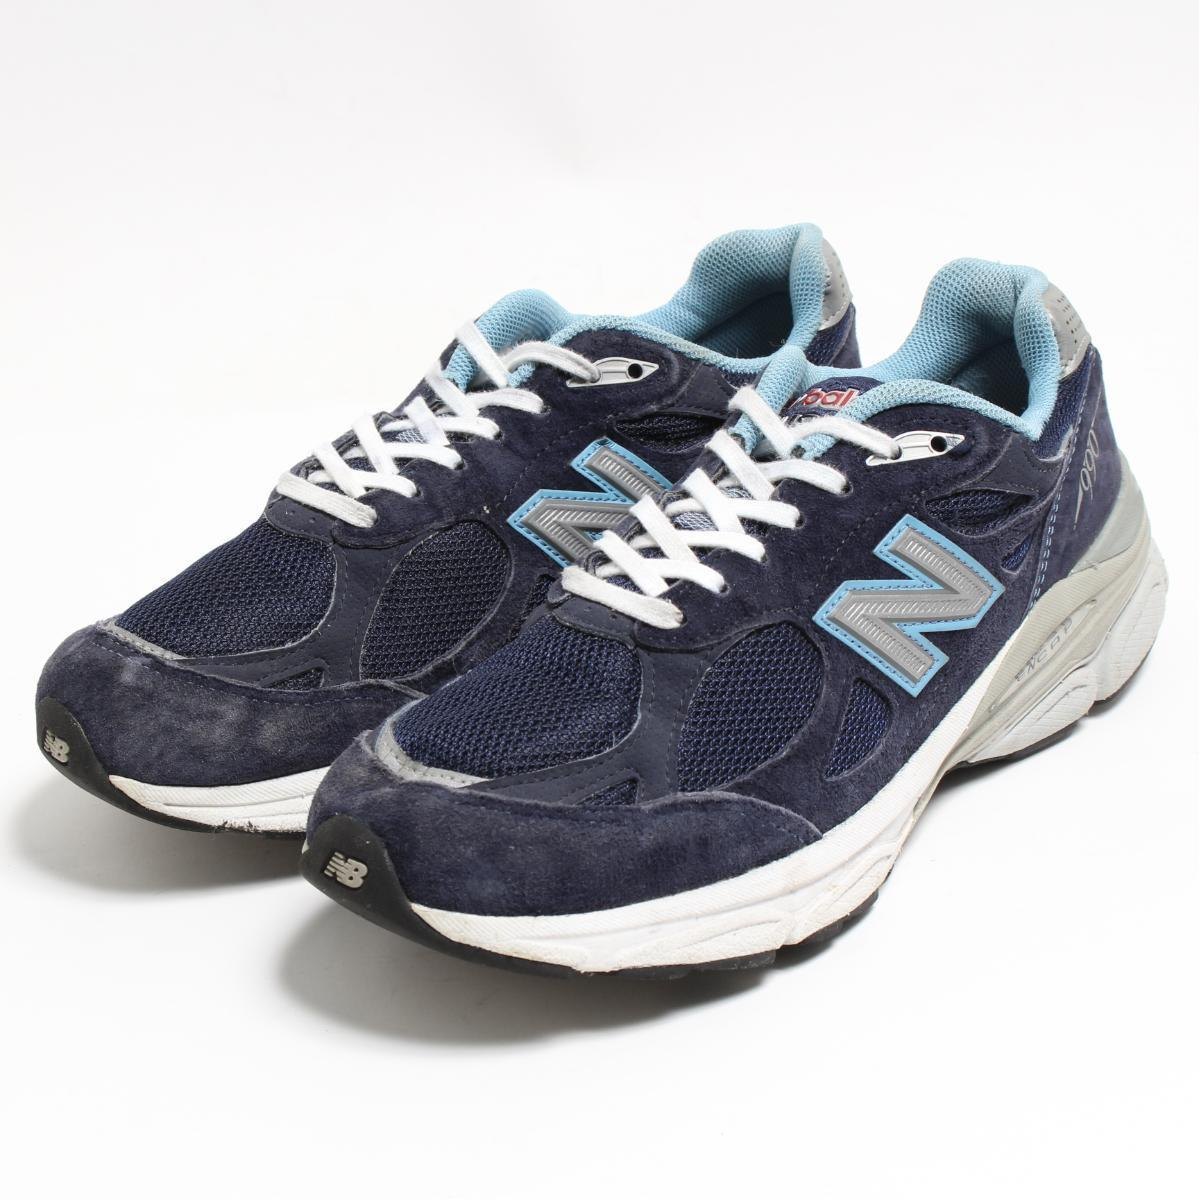 quality design 90bef d7a69 8.5AA Lady's 25.5cm /bon4571 made in New Balance NEW BALANCE W990NV3  sneakers USA